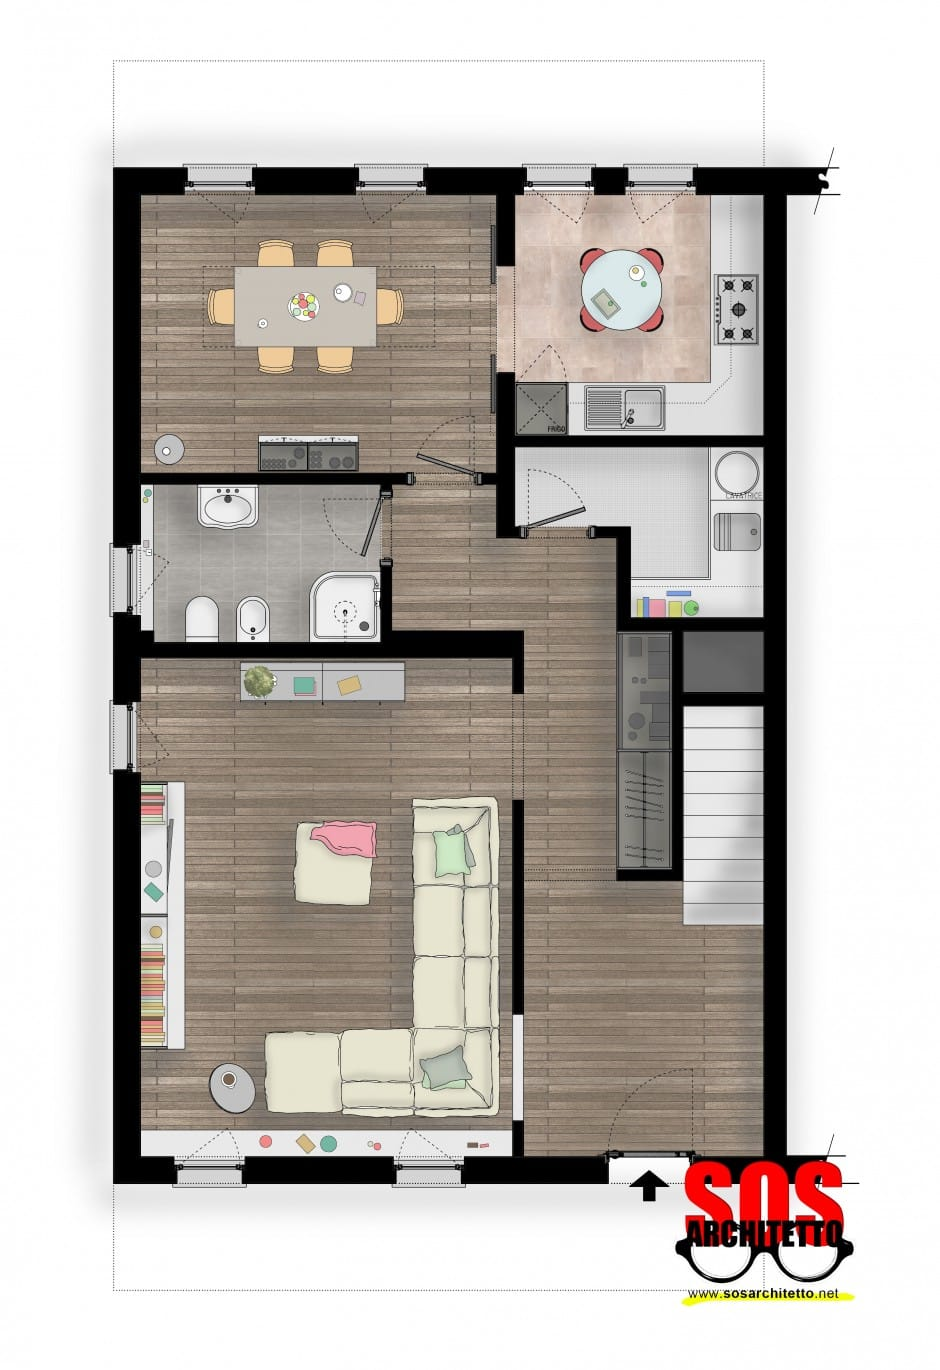 Beautiful casa progetto sos architetto online with for Architetto gratis online